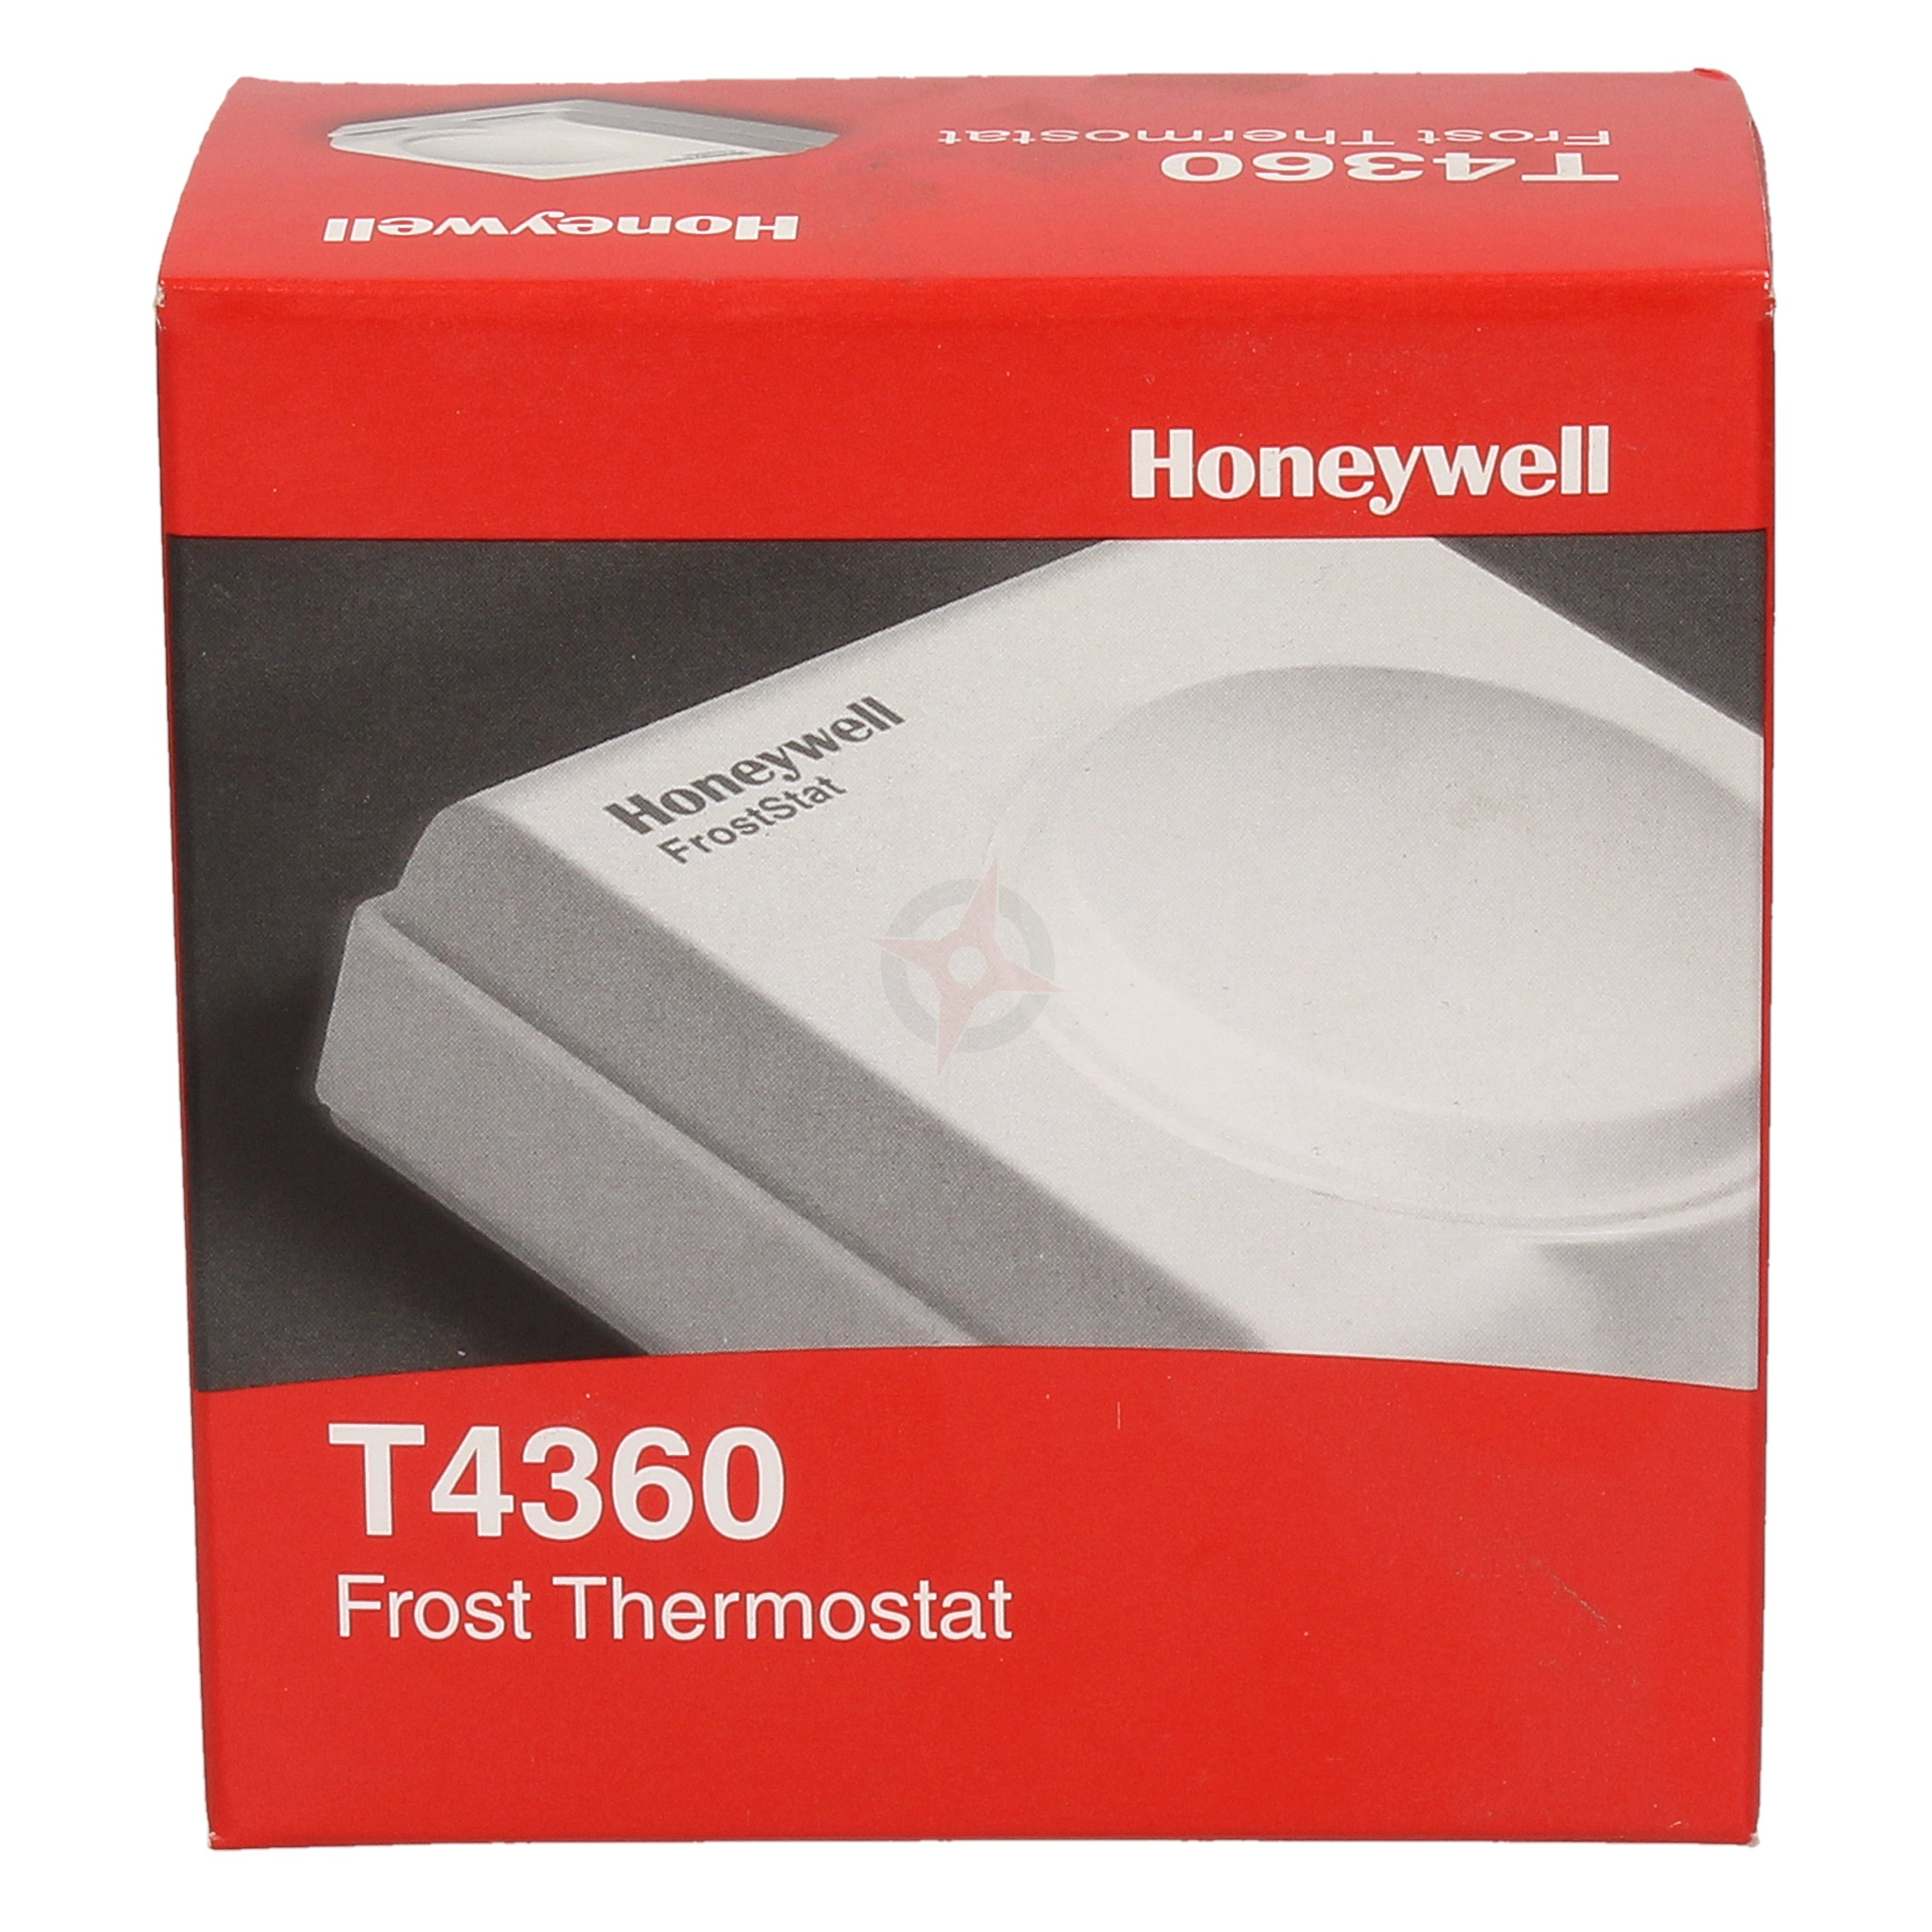 Honeywell Frost Thermostat T4360A